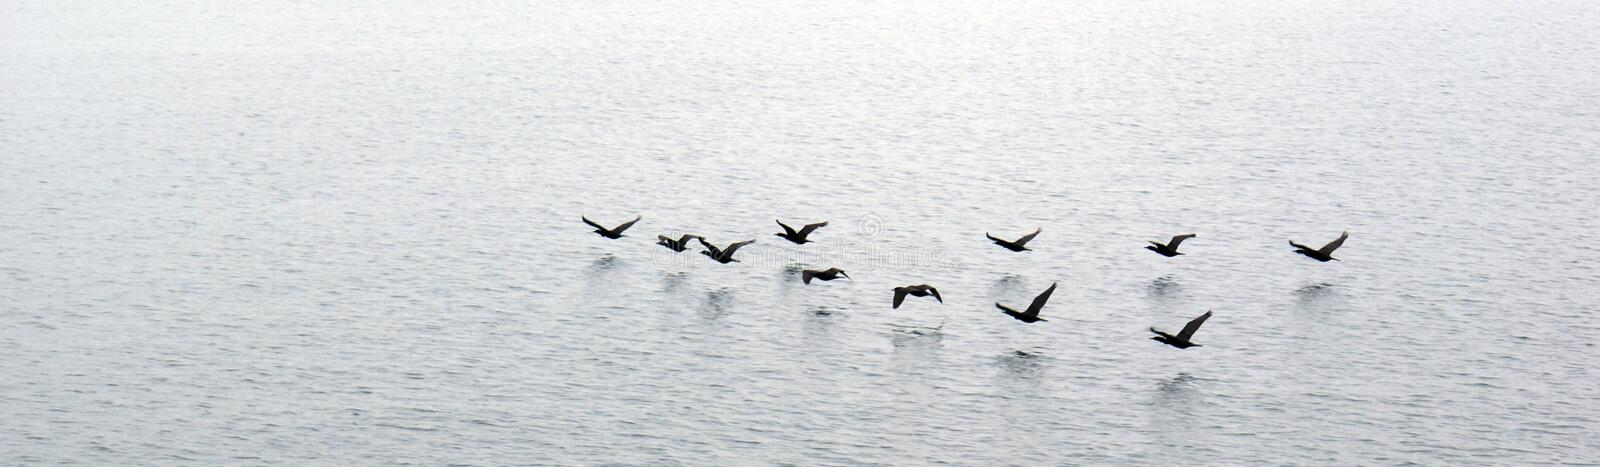 Download Ducks flying over water stock image. Image of winging - 10729919